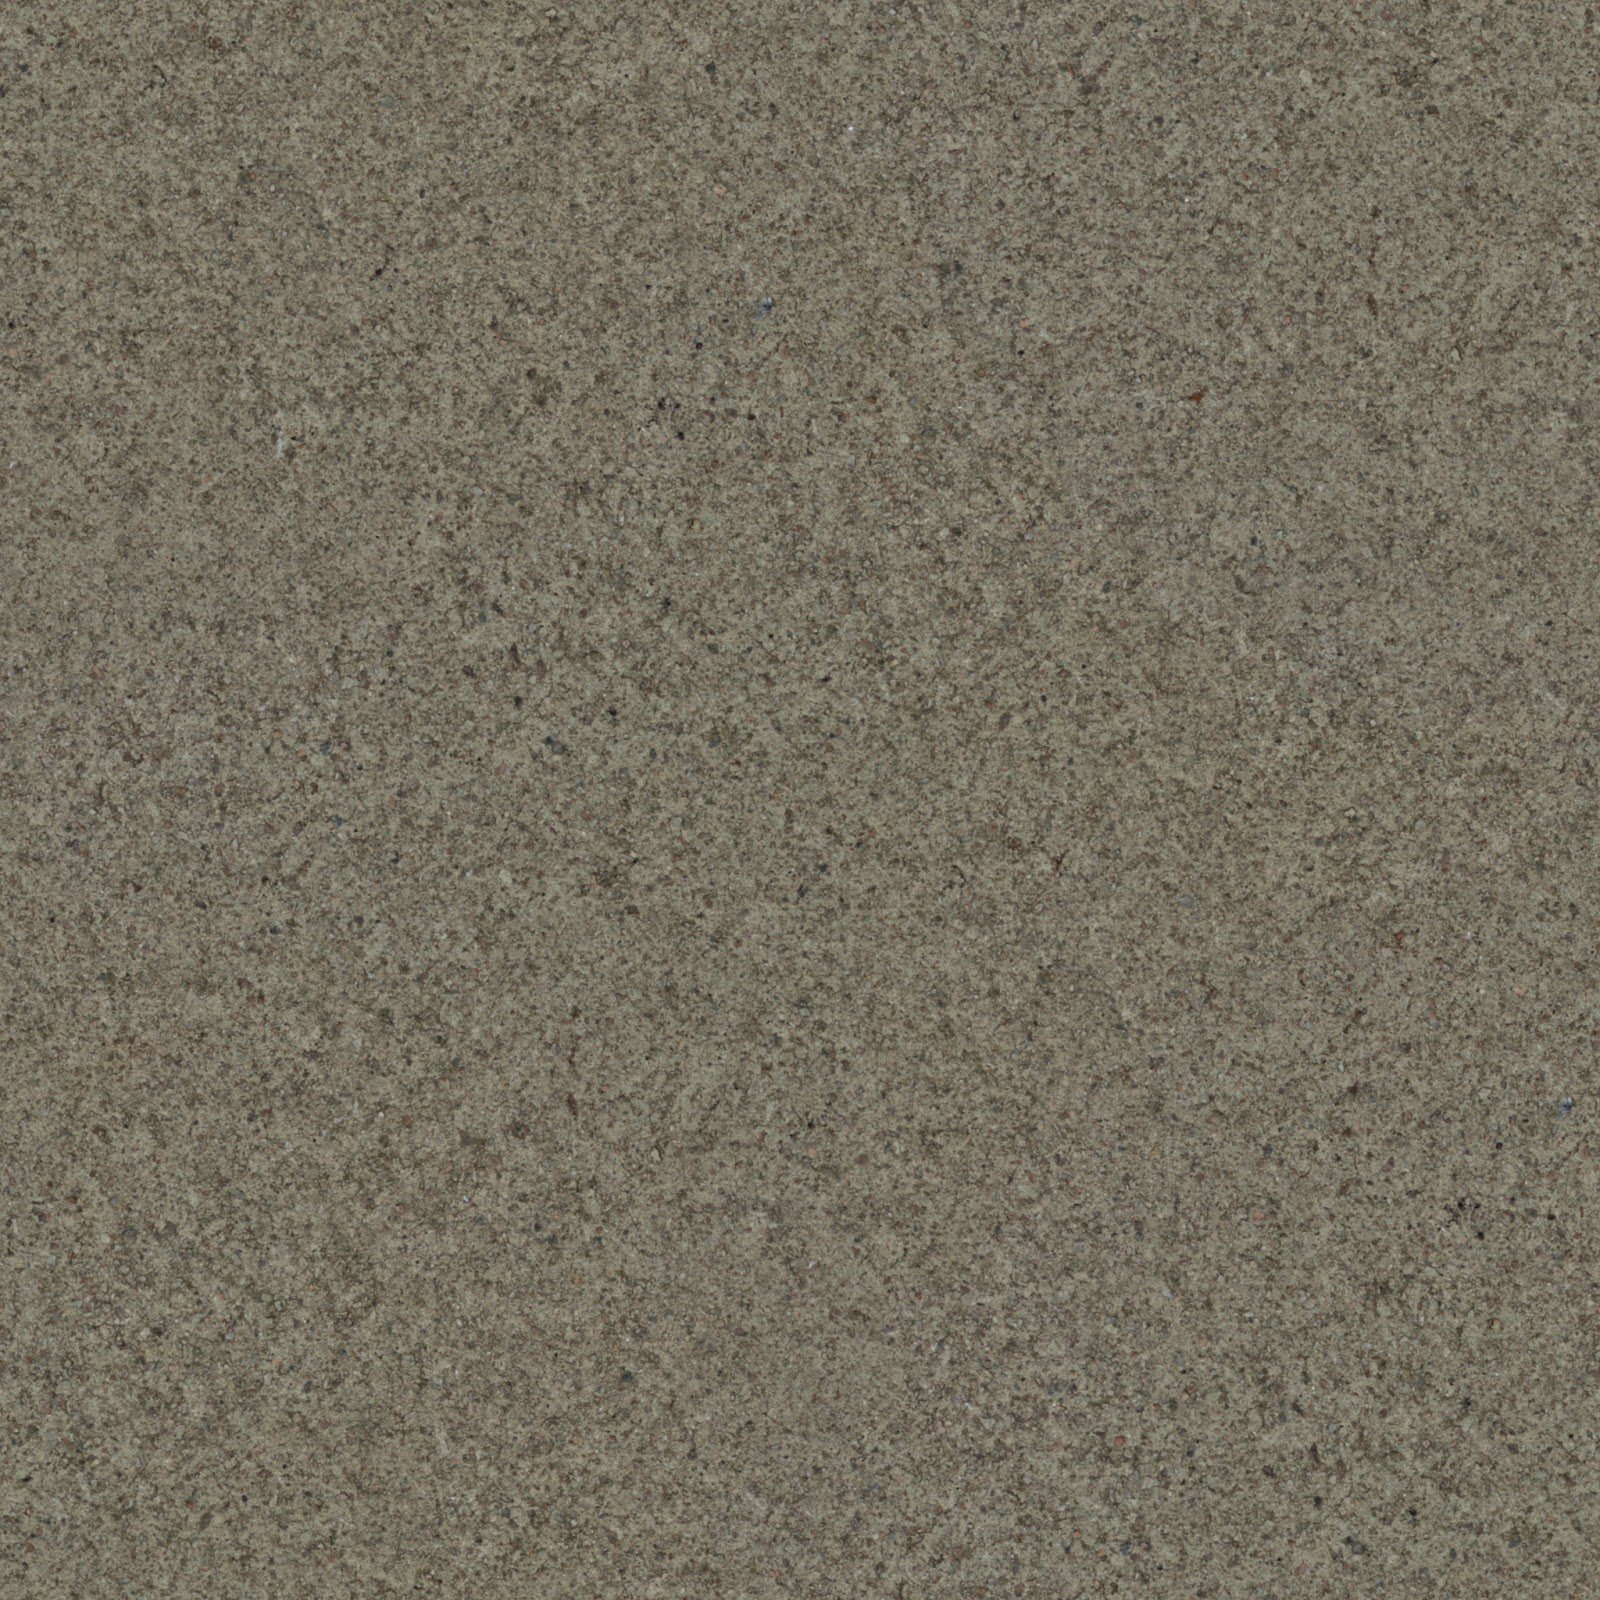 Concrete panel feb_2015_2 seamless texture 2048x2048